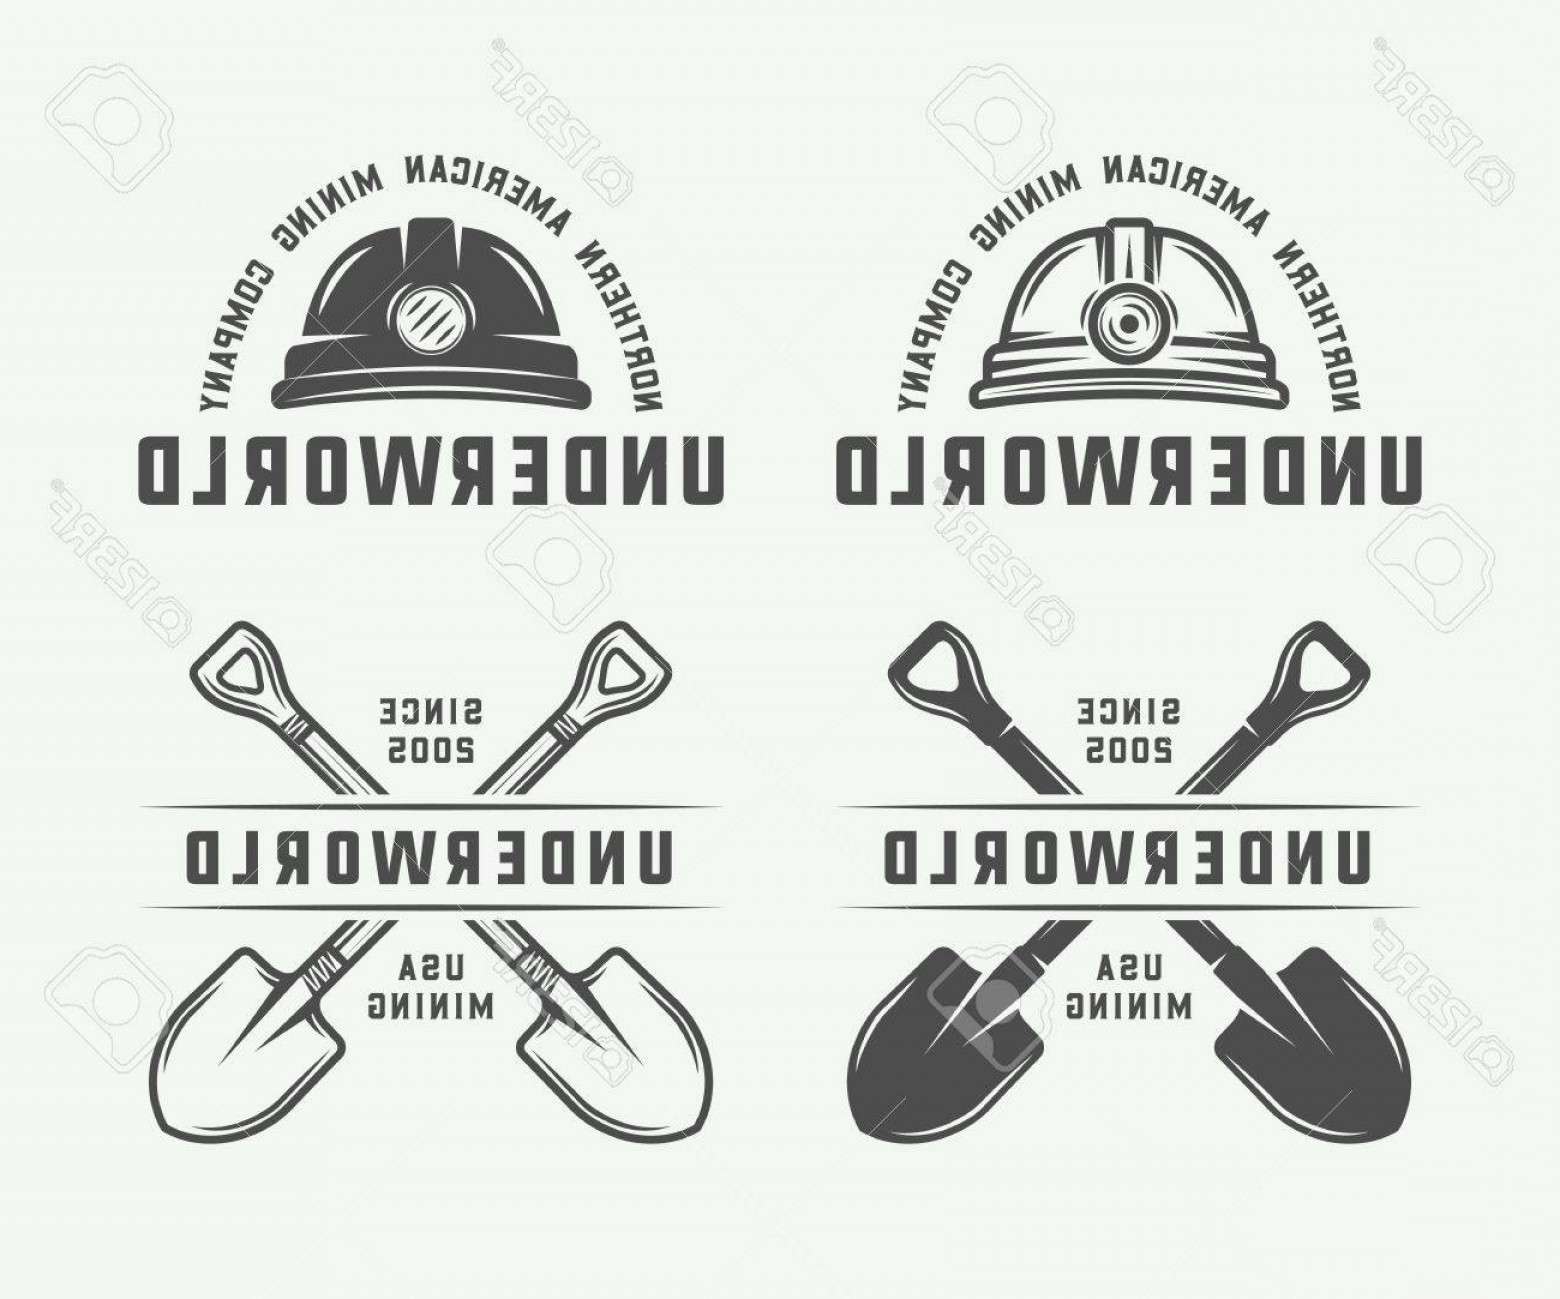 Construction Logos Vector Black And White: Photostock Vector Set Of Retro Mining Or Construction Logo Badges And Labels In Vintage Style Monochrome Graphic Art V